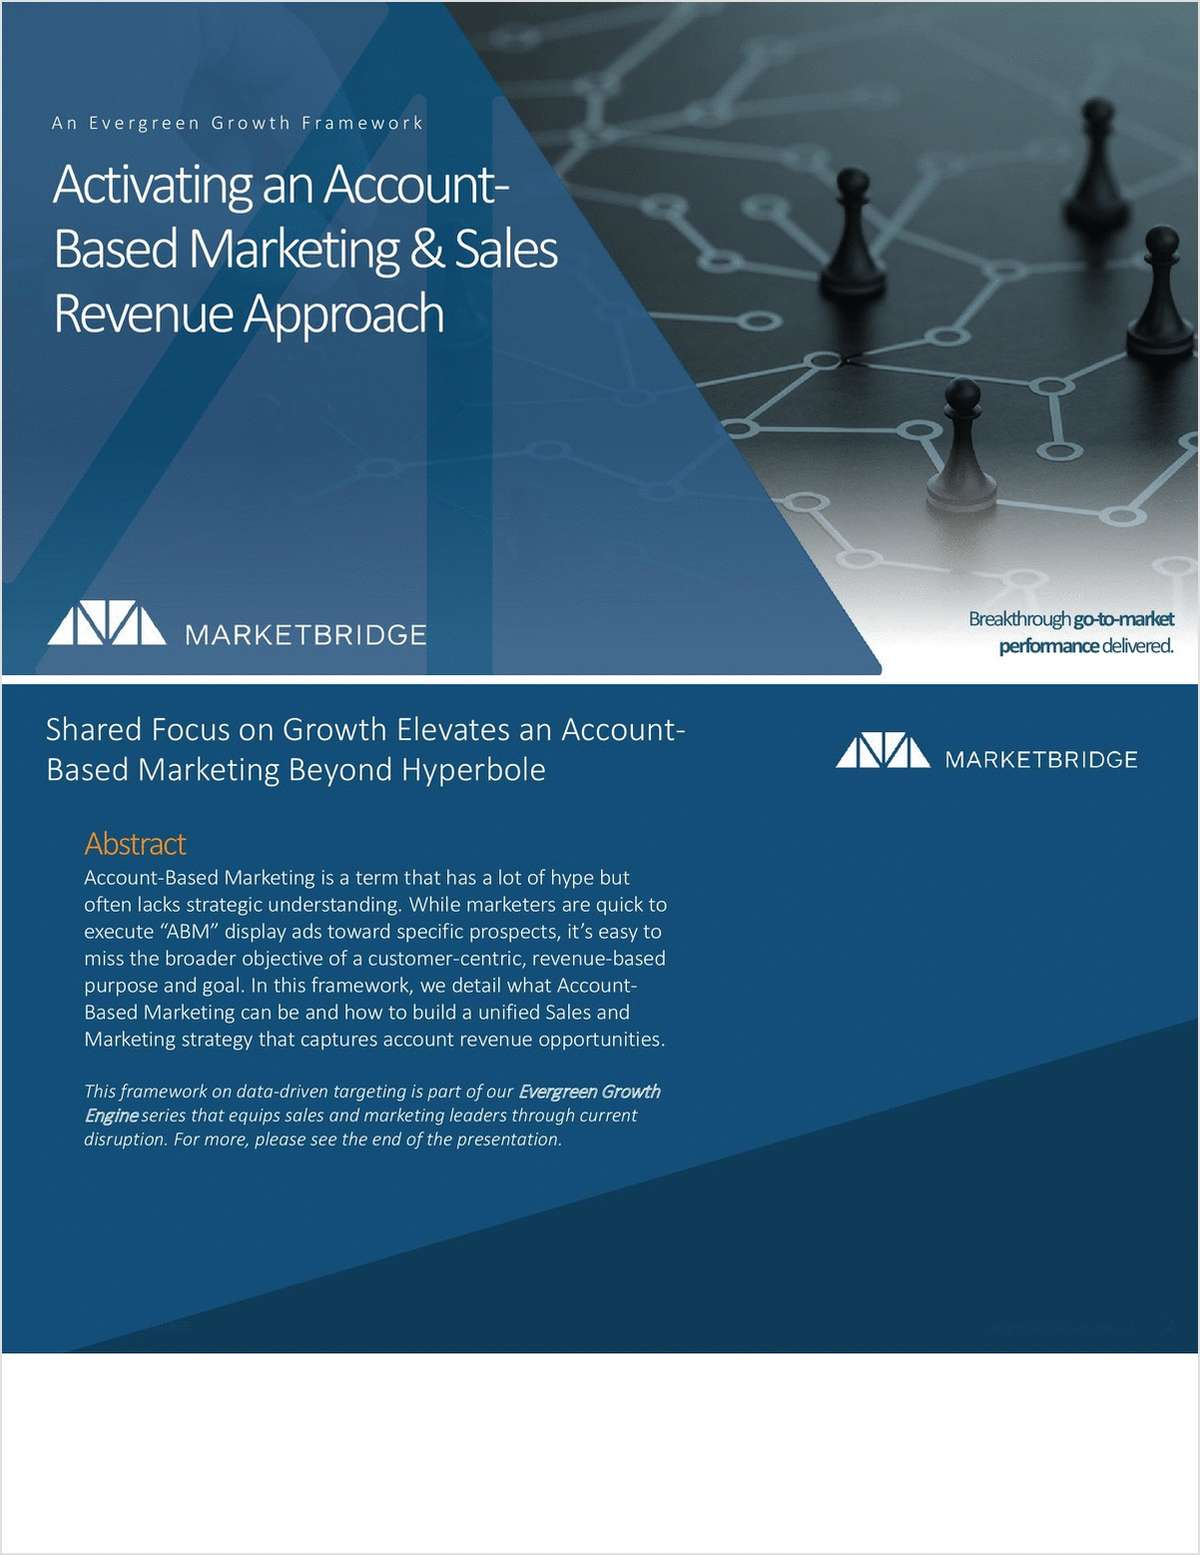 Activating an Account-Based Marketing and Sales Revenue Approach